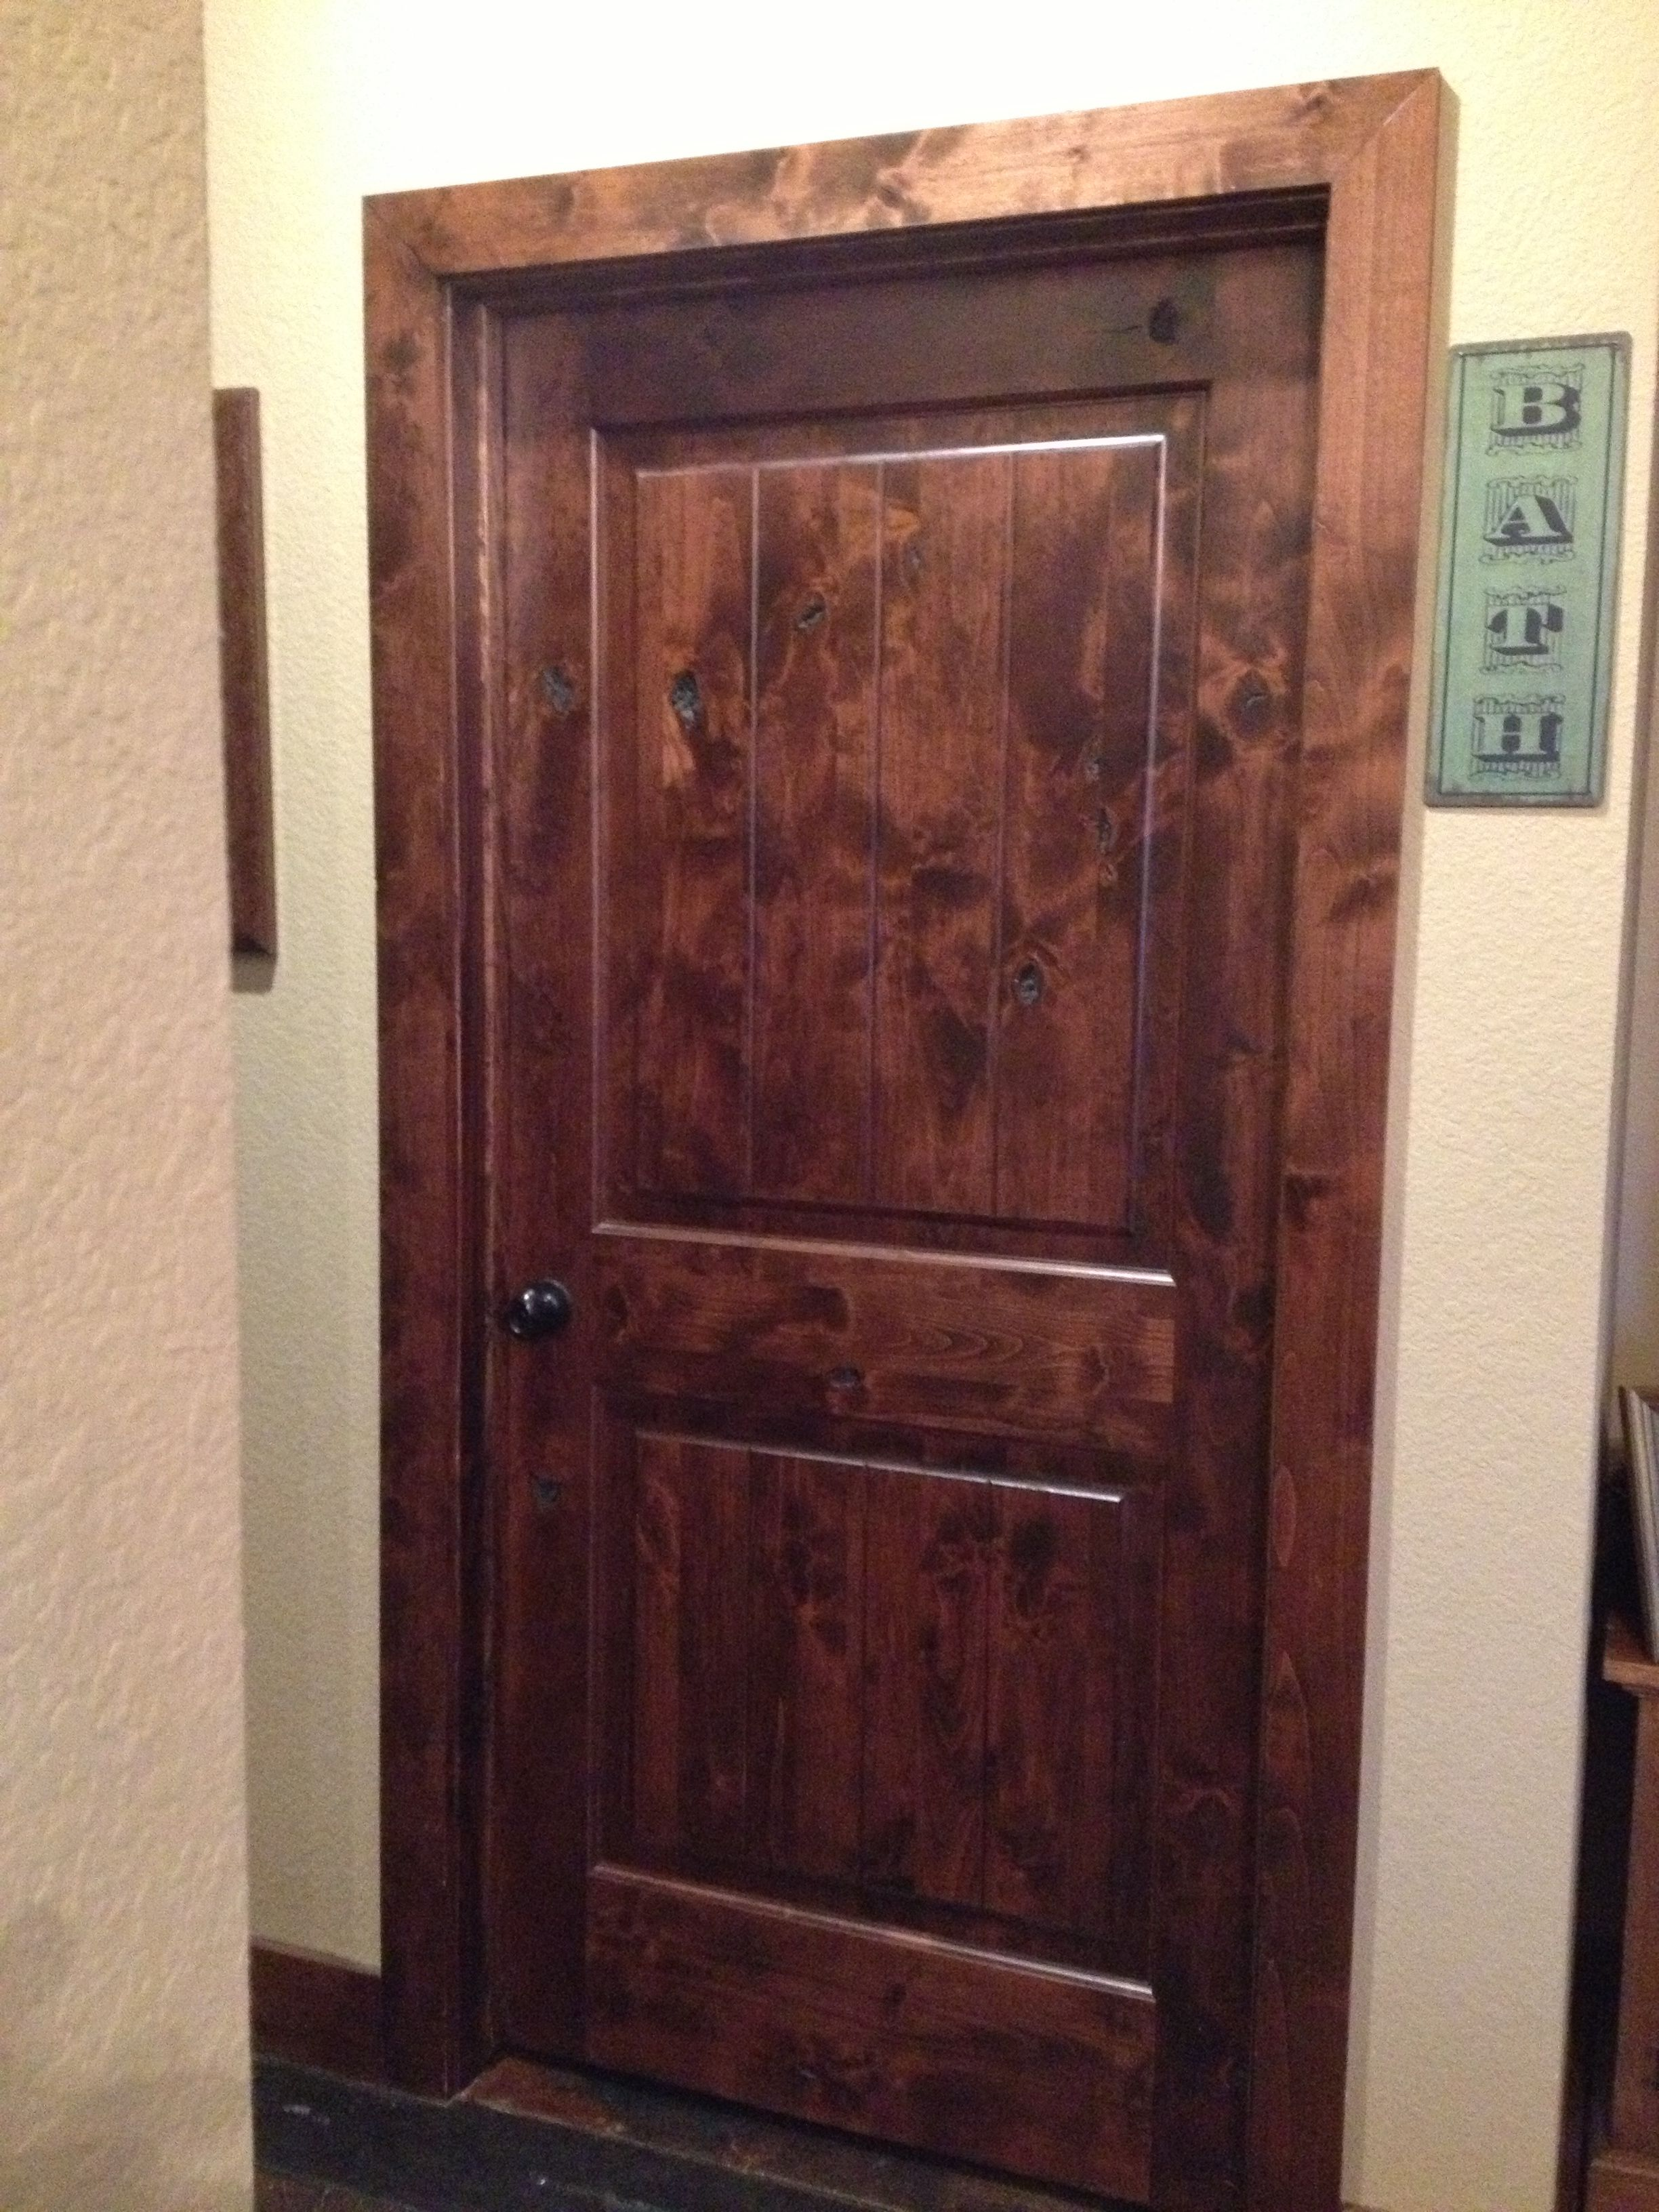 Stained Knotty Alder Doors Trim So Rustic Rustic Doors Rustic Doors Interior Bedroom Door Decorations